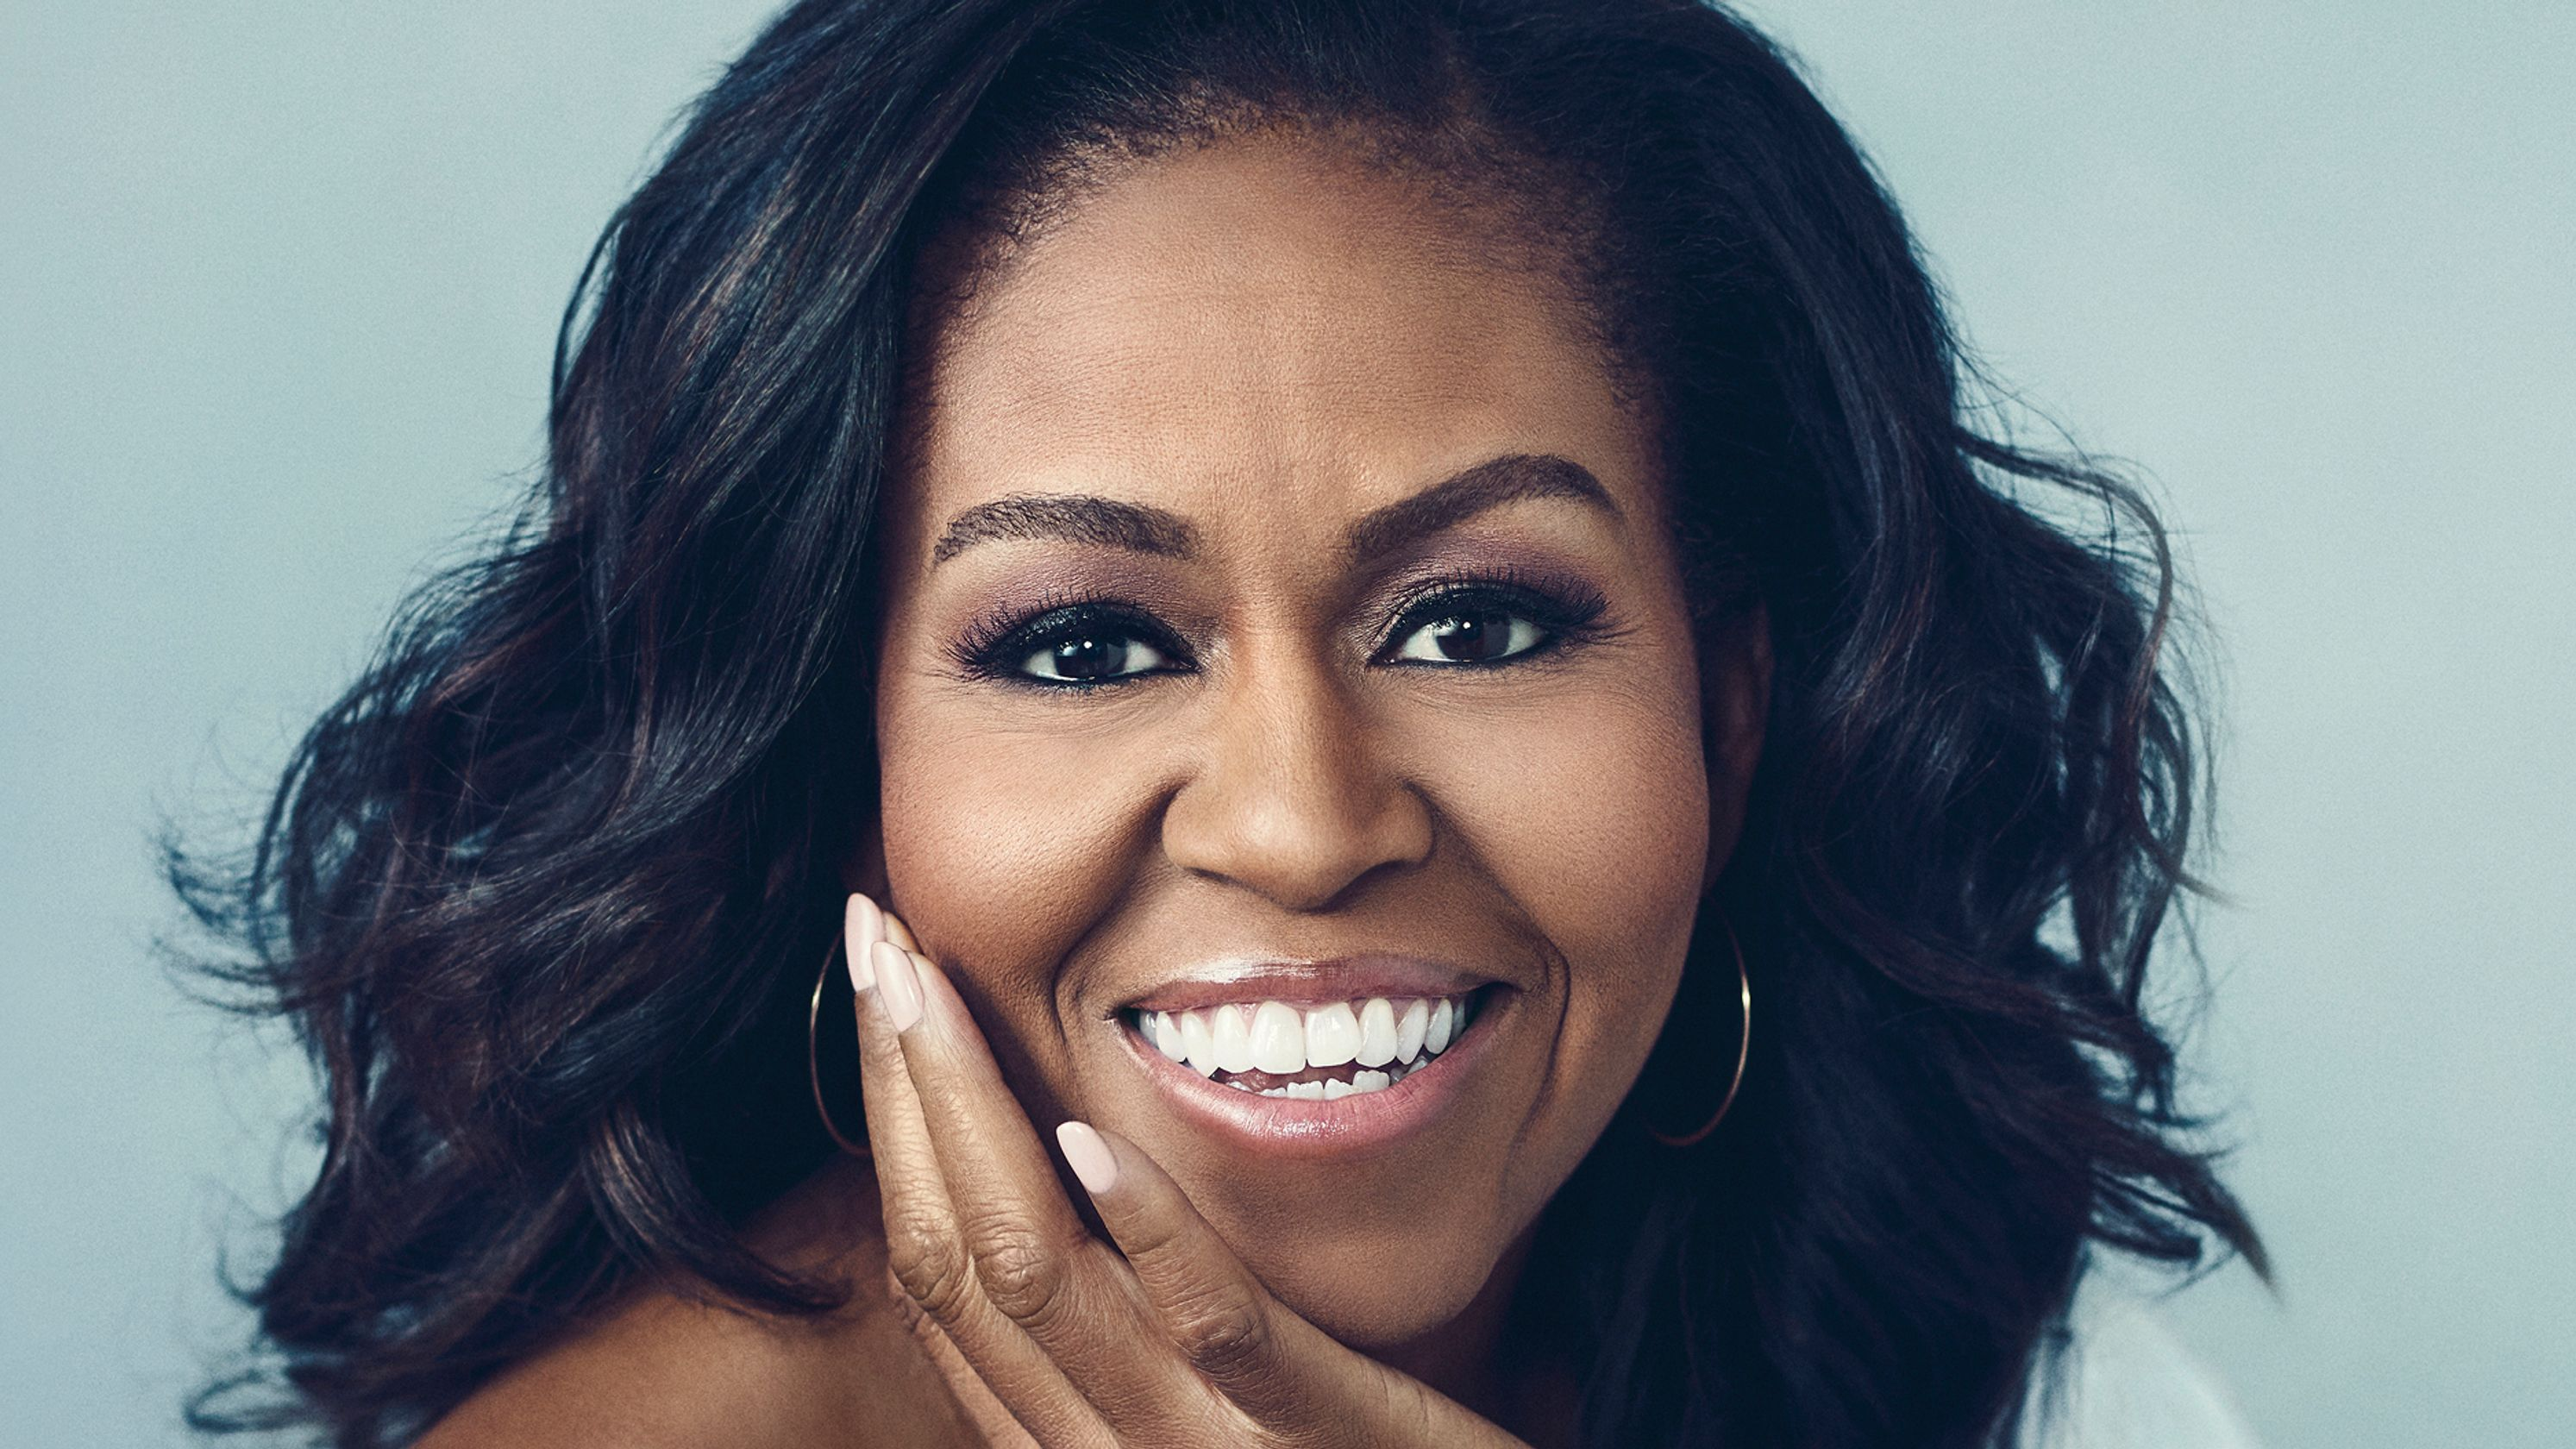 10 books we loved reading in 2018: Michelle Obama, David Sedaris, Tayari Jones and more